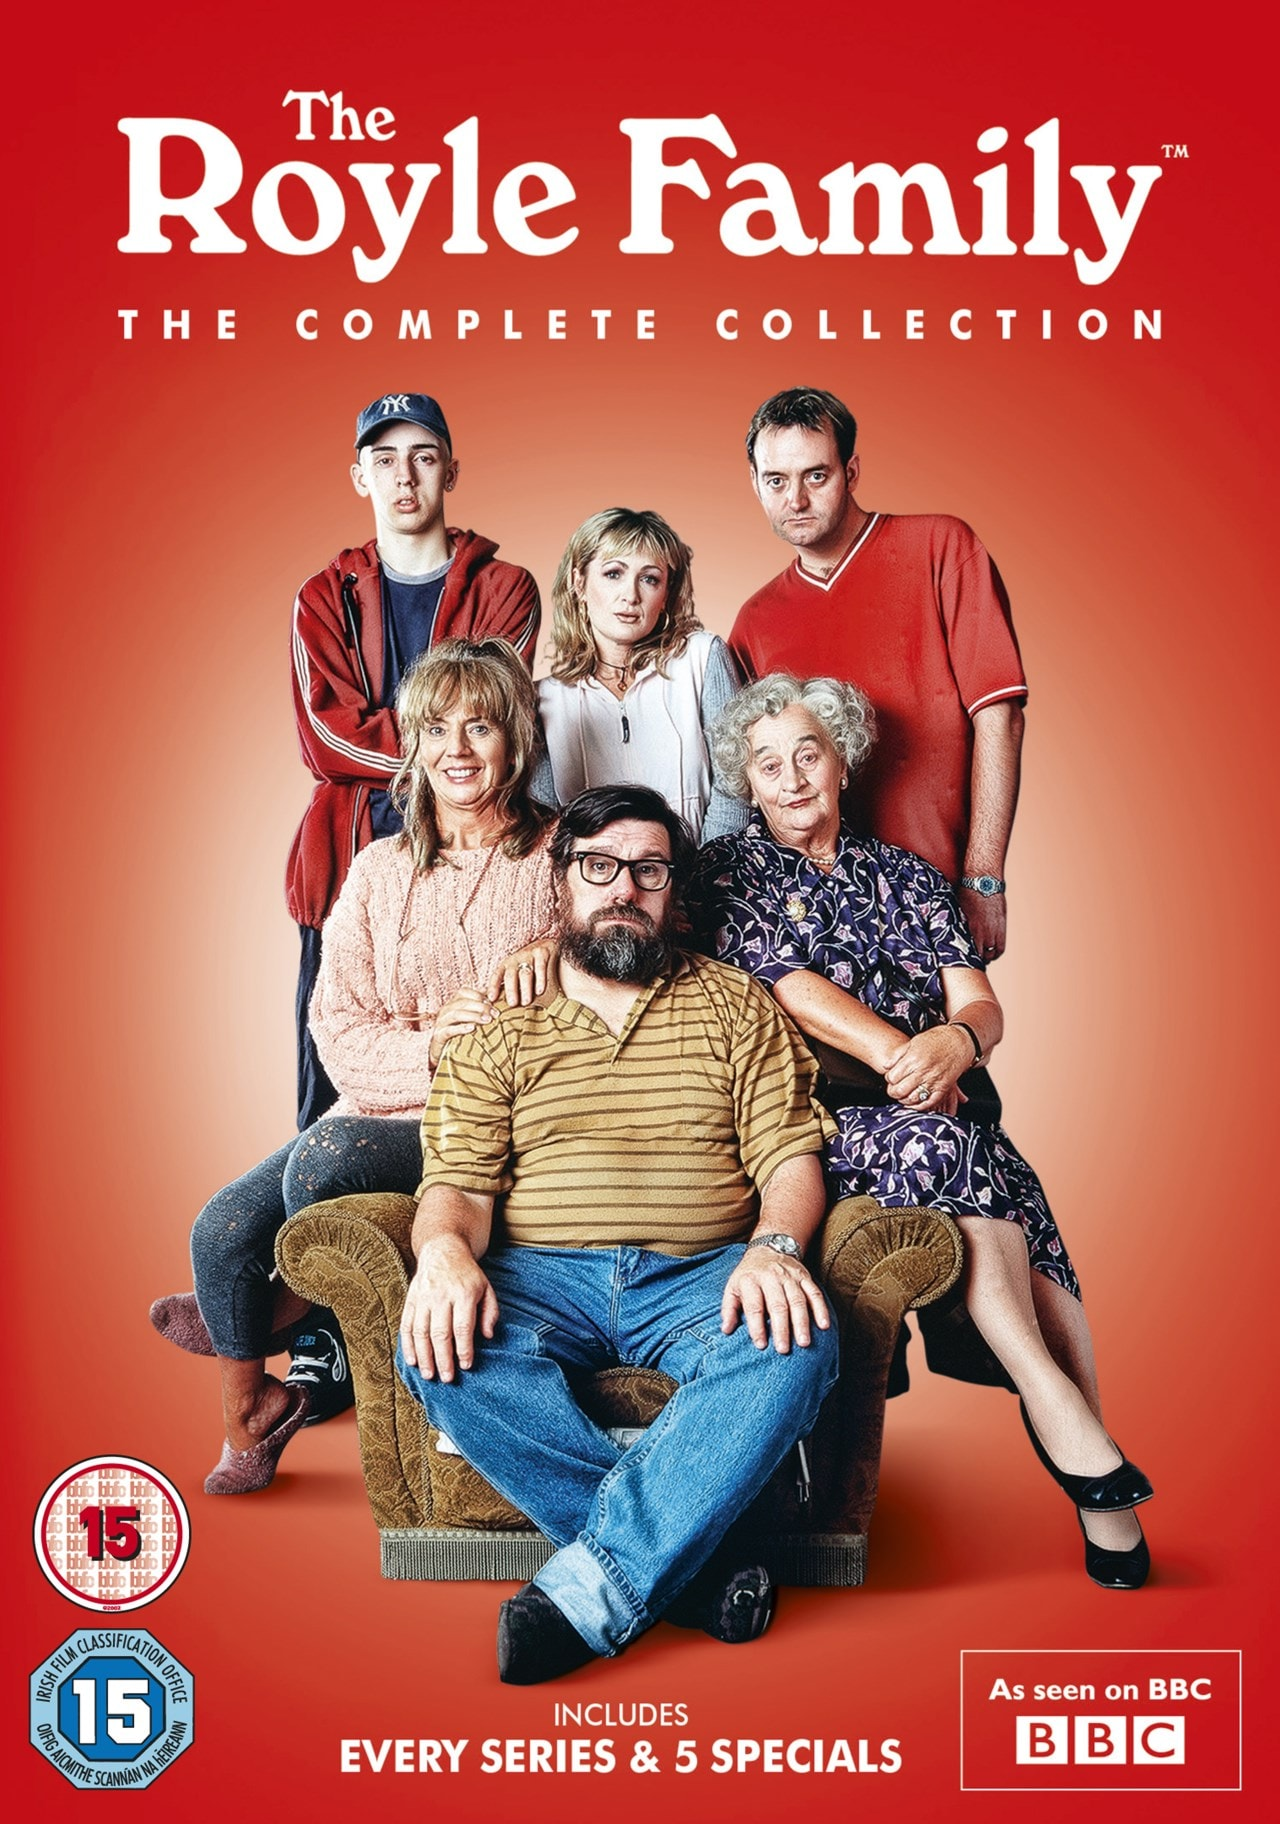 The Royle Family: The Complete Collection - 1